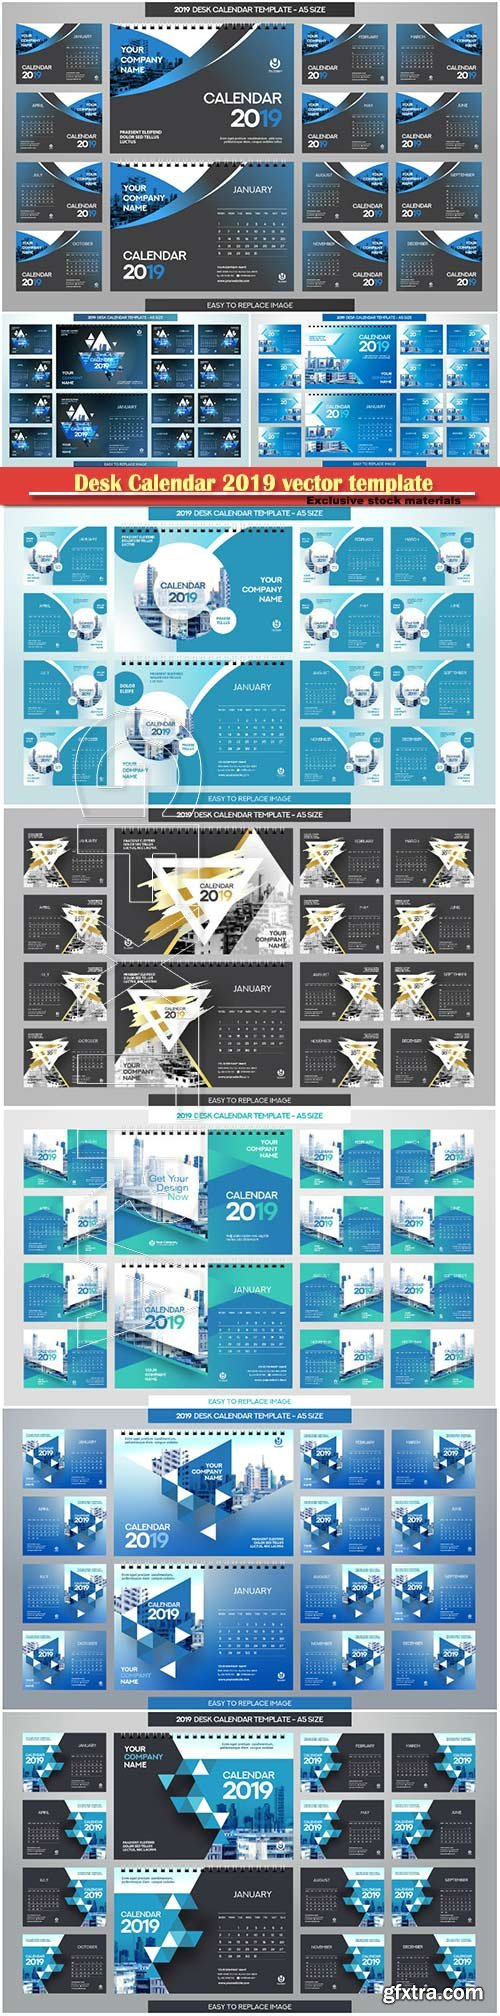 Desk Calendar 2019 vector template illustration